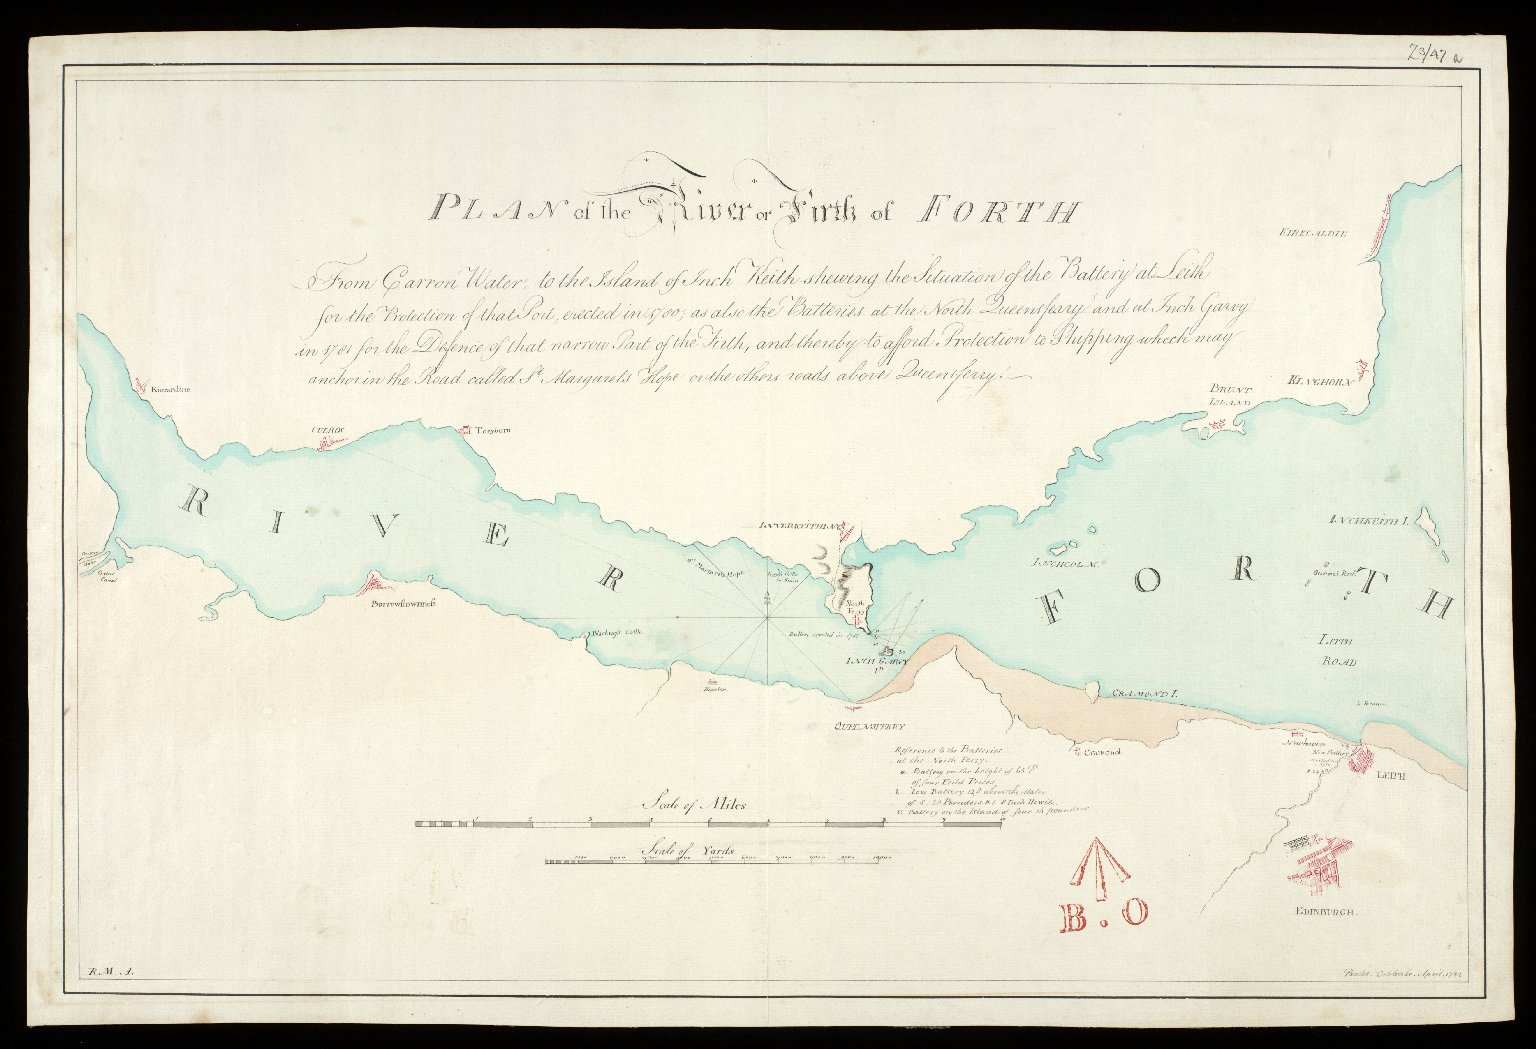 Plan of the River or Firth of Forth [1 of 1]